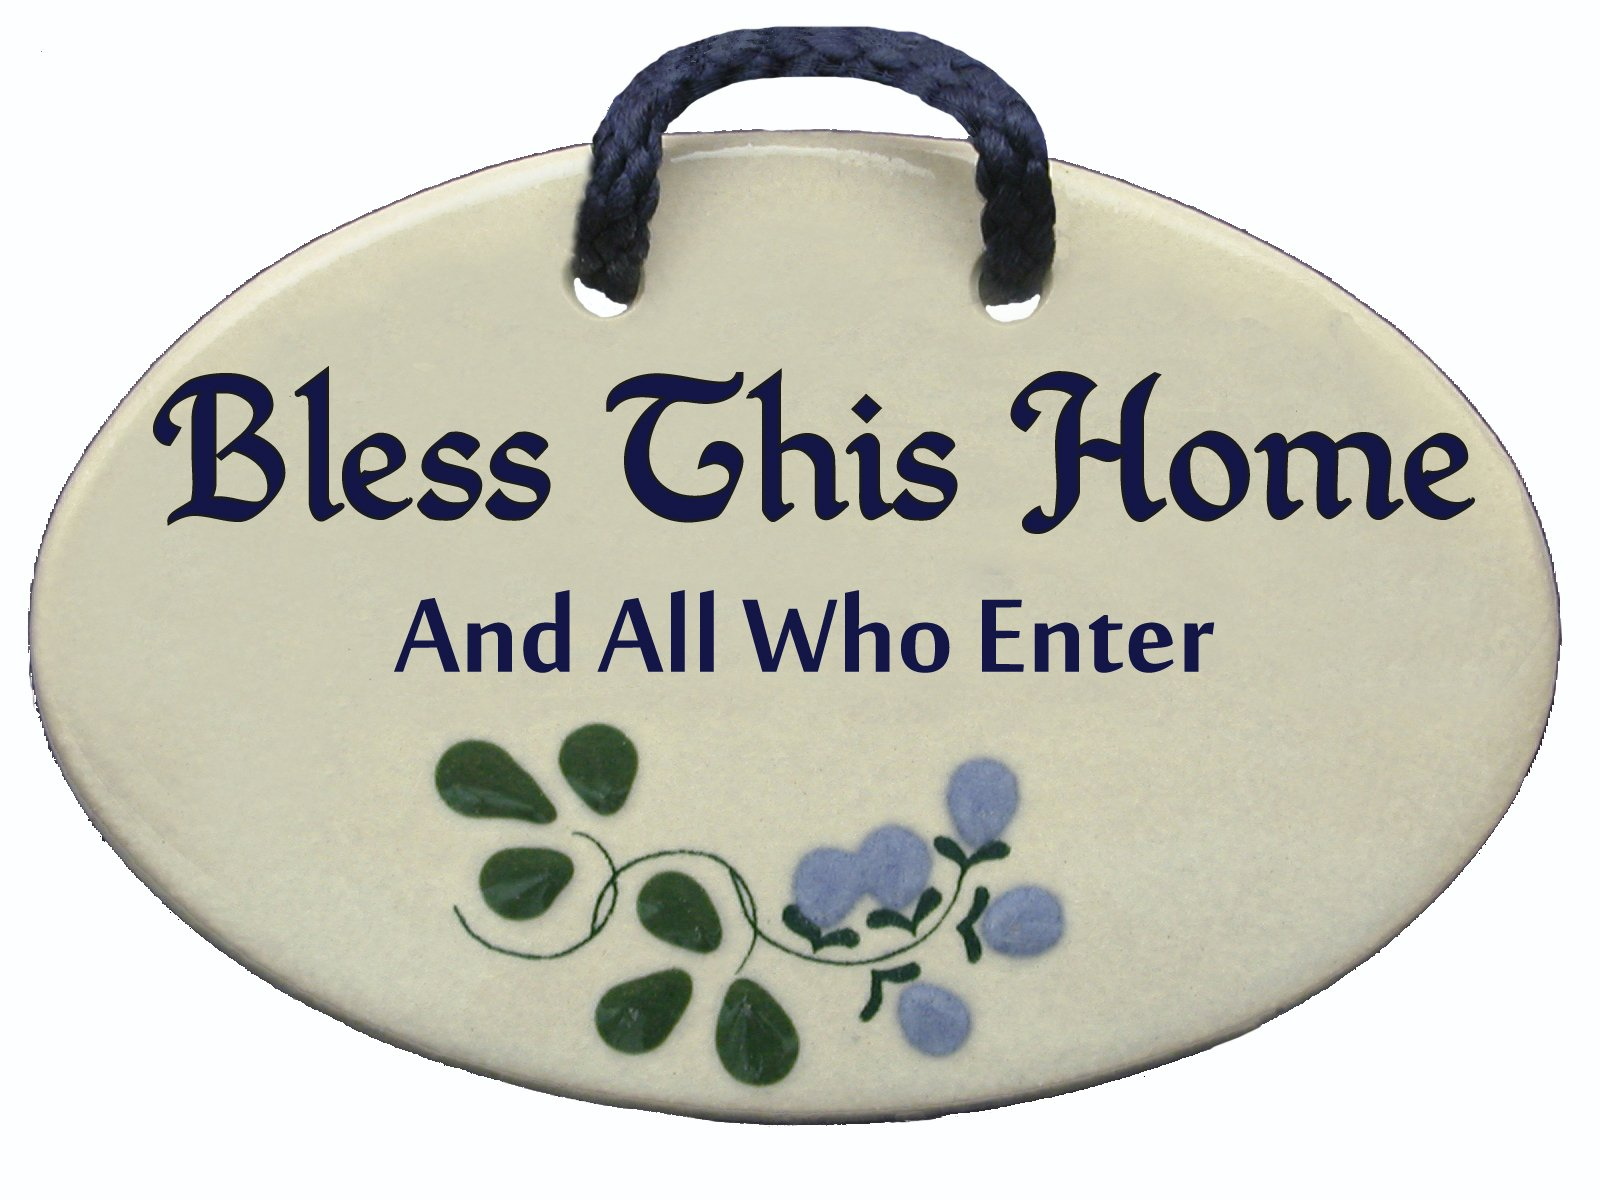 Bless this home and all who enter. Ceramic wall plaques handmade in the USA . Reduced price offsets shipping cost.